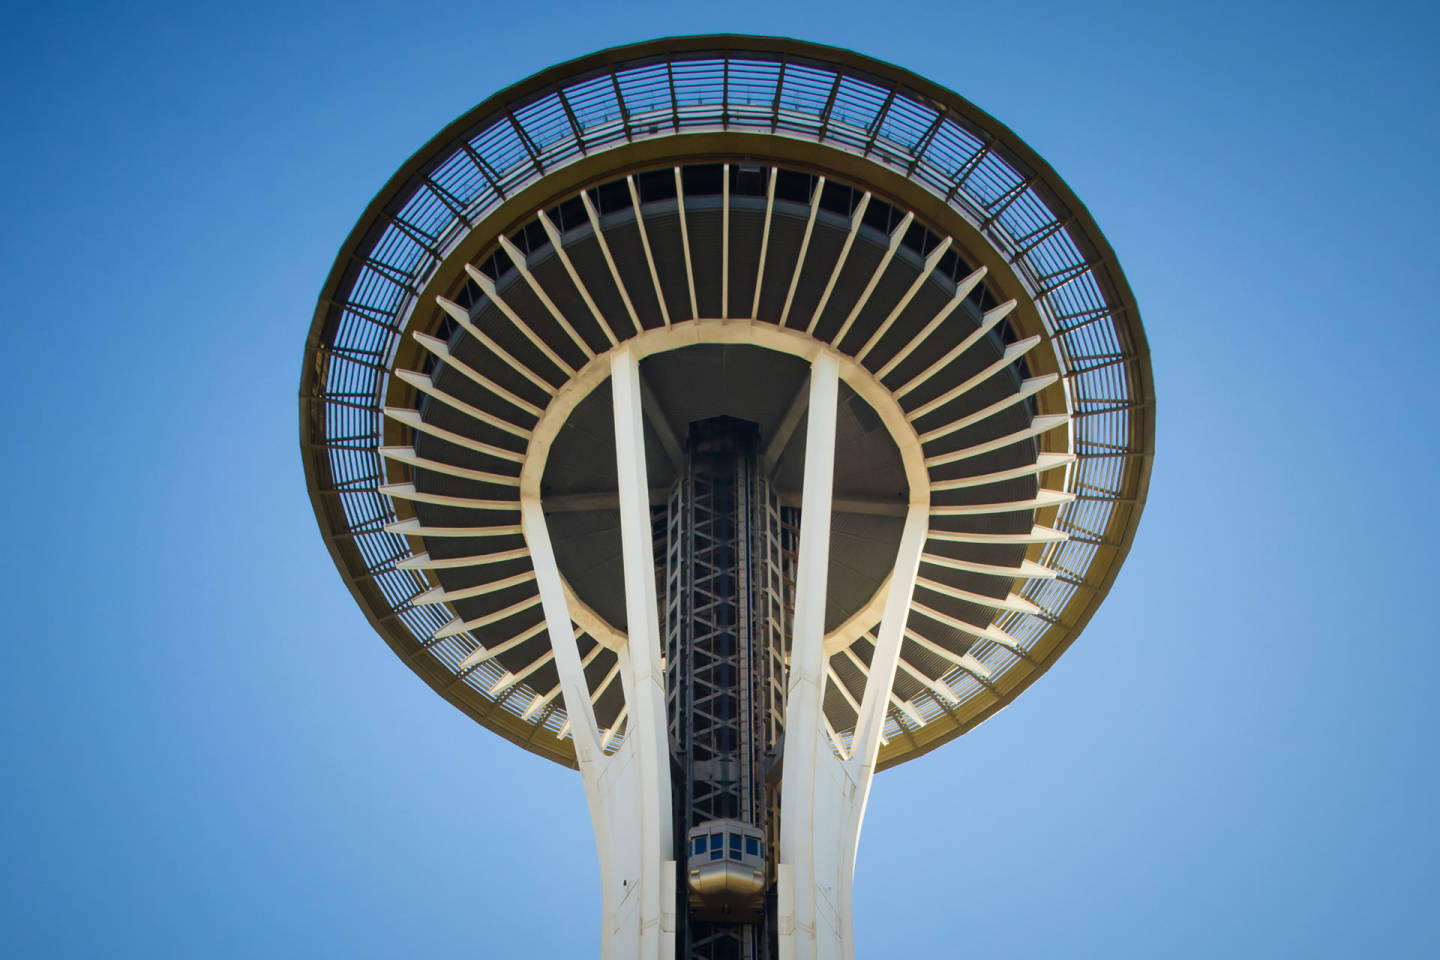 Space Needle (Seattle, WA)